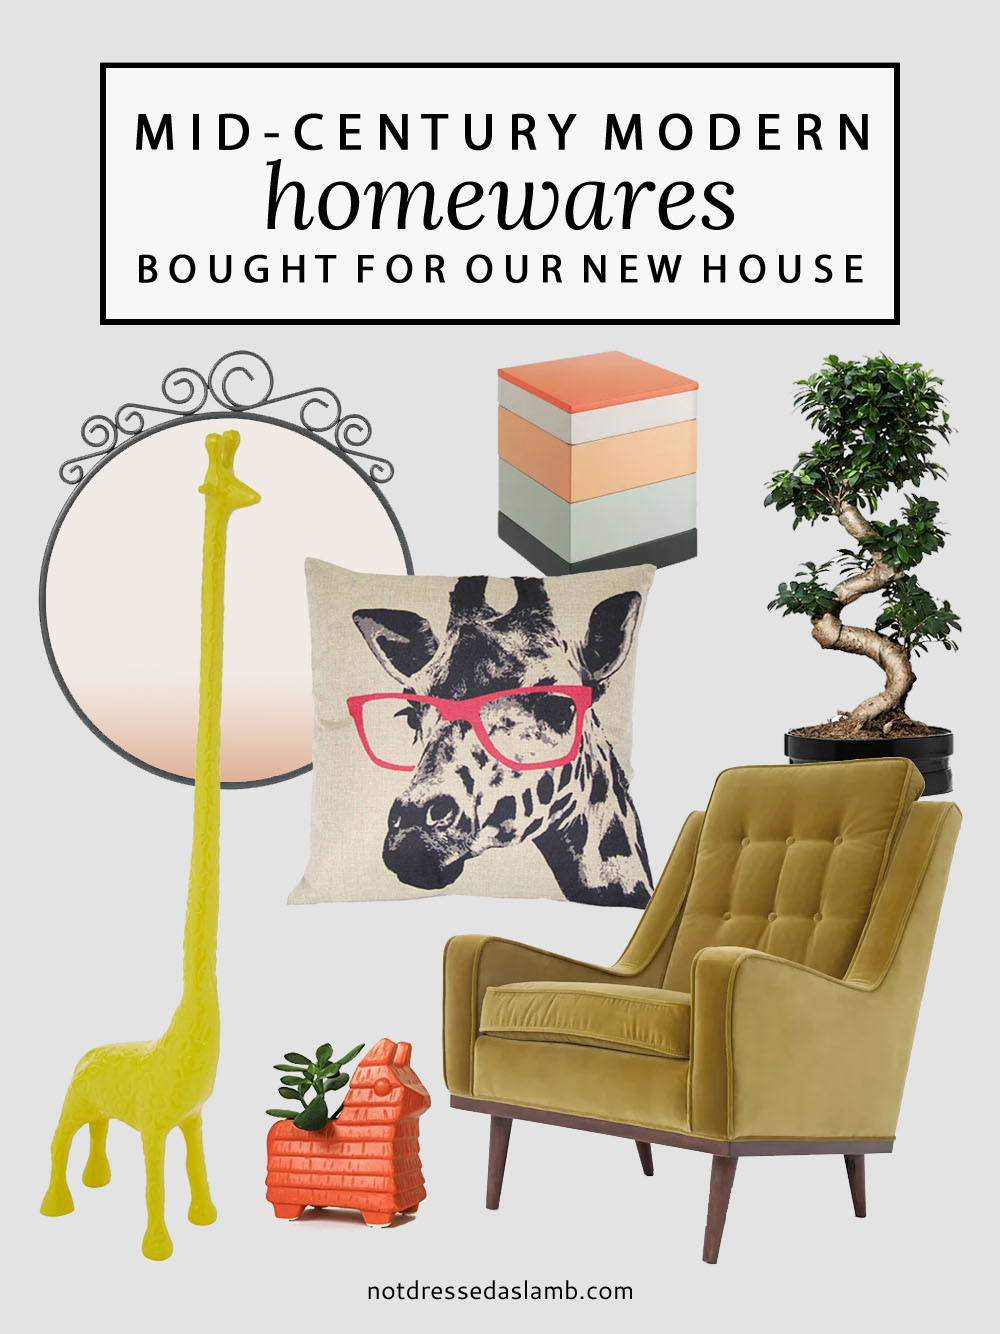 All the Mid-Century Modern Homewares We've Bought For Our New House | Not Dressed As Lamb